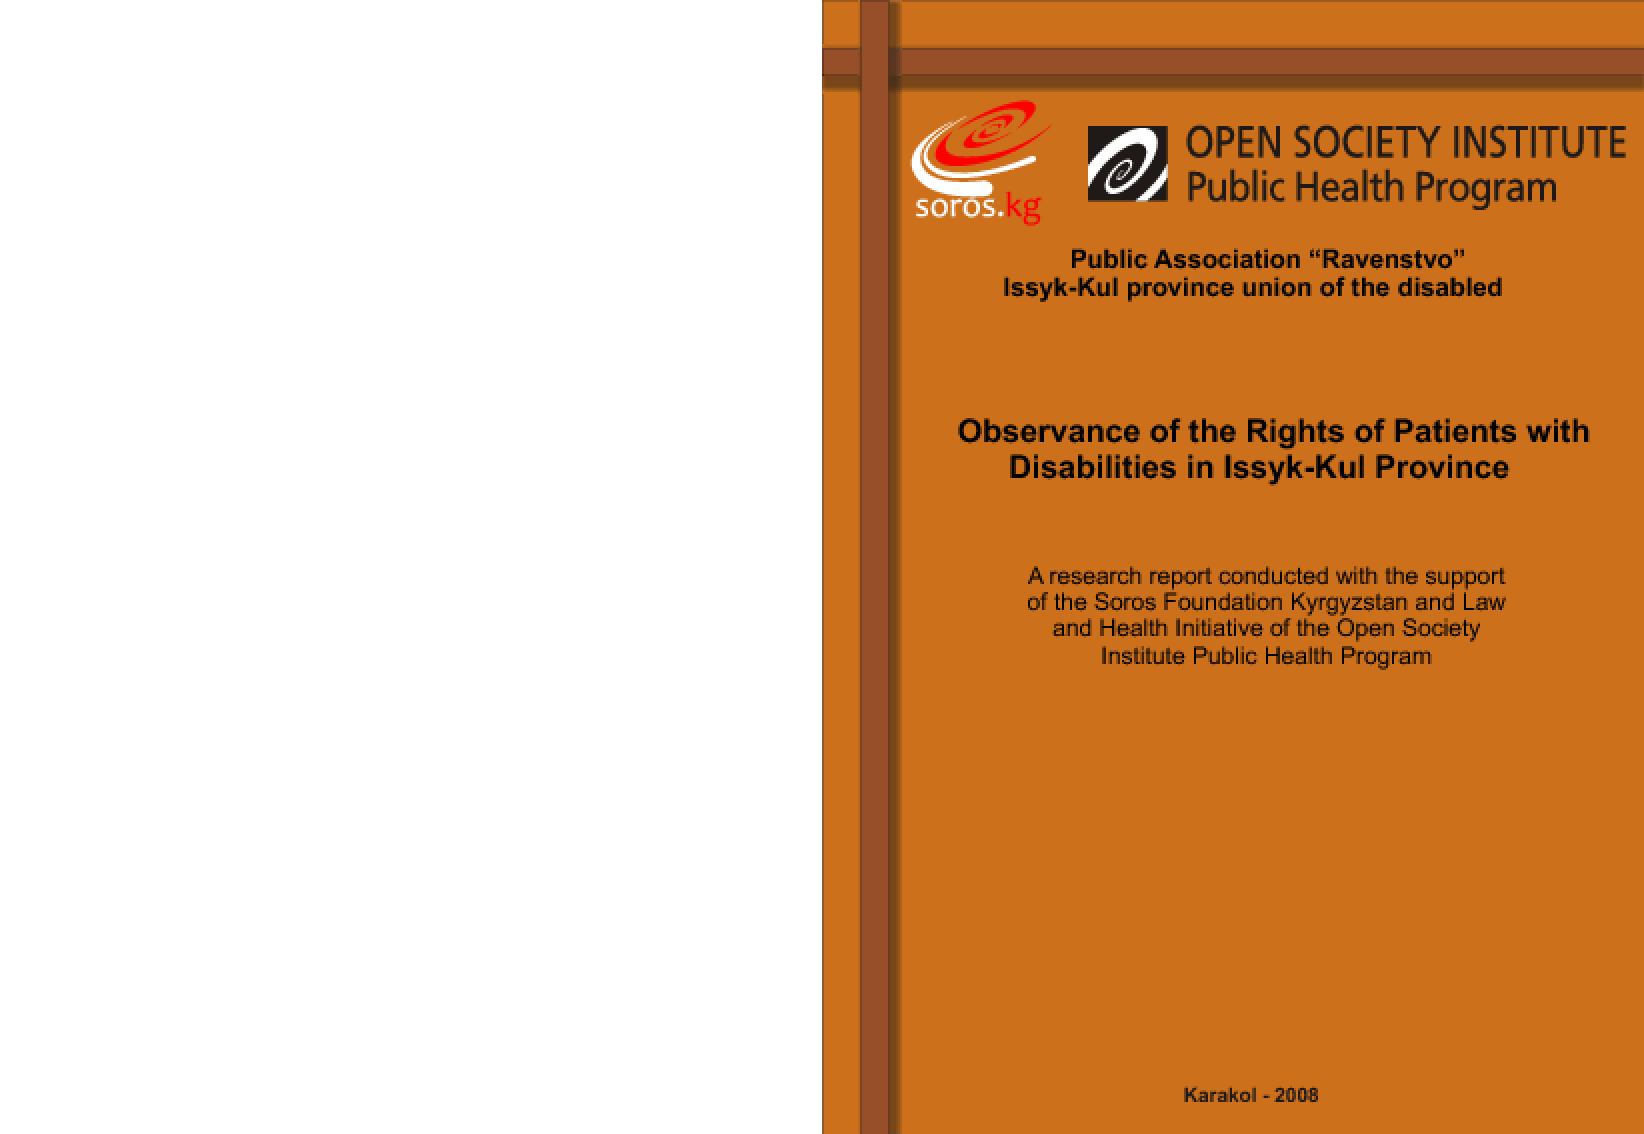 Observance of the Rights of Patients With Disabilities in Issyk-Kul Province